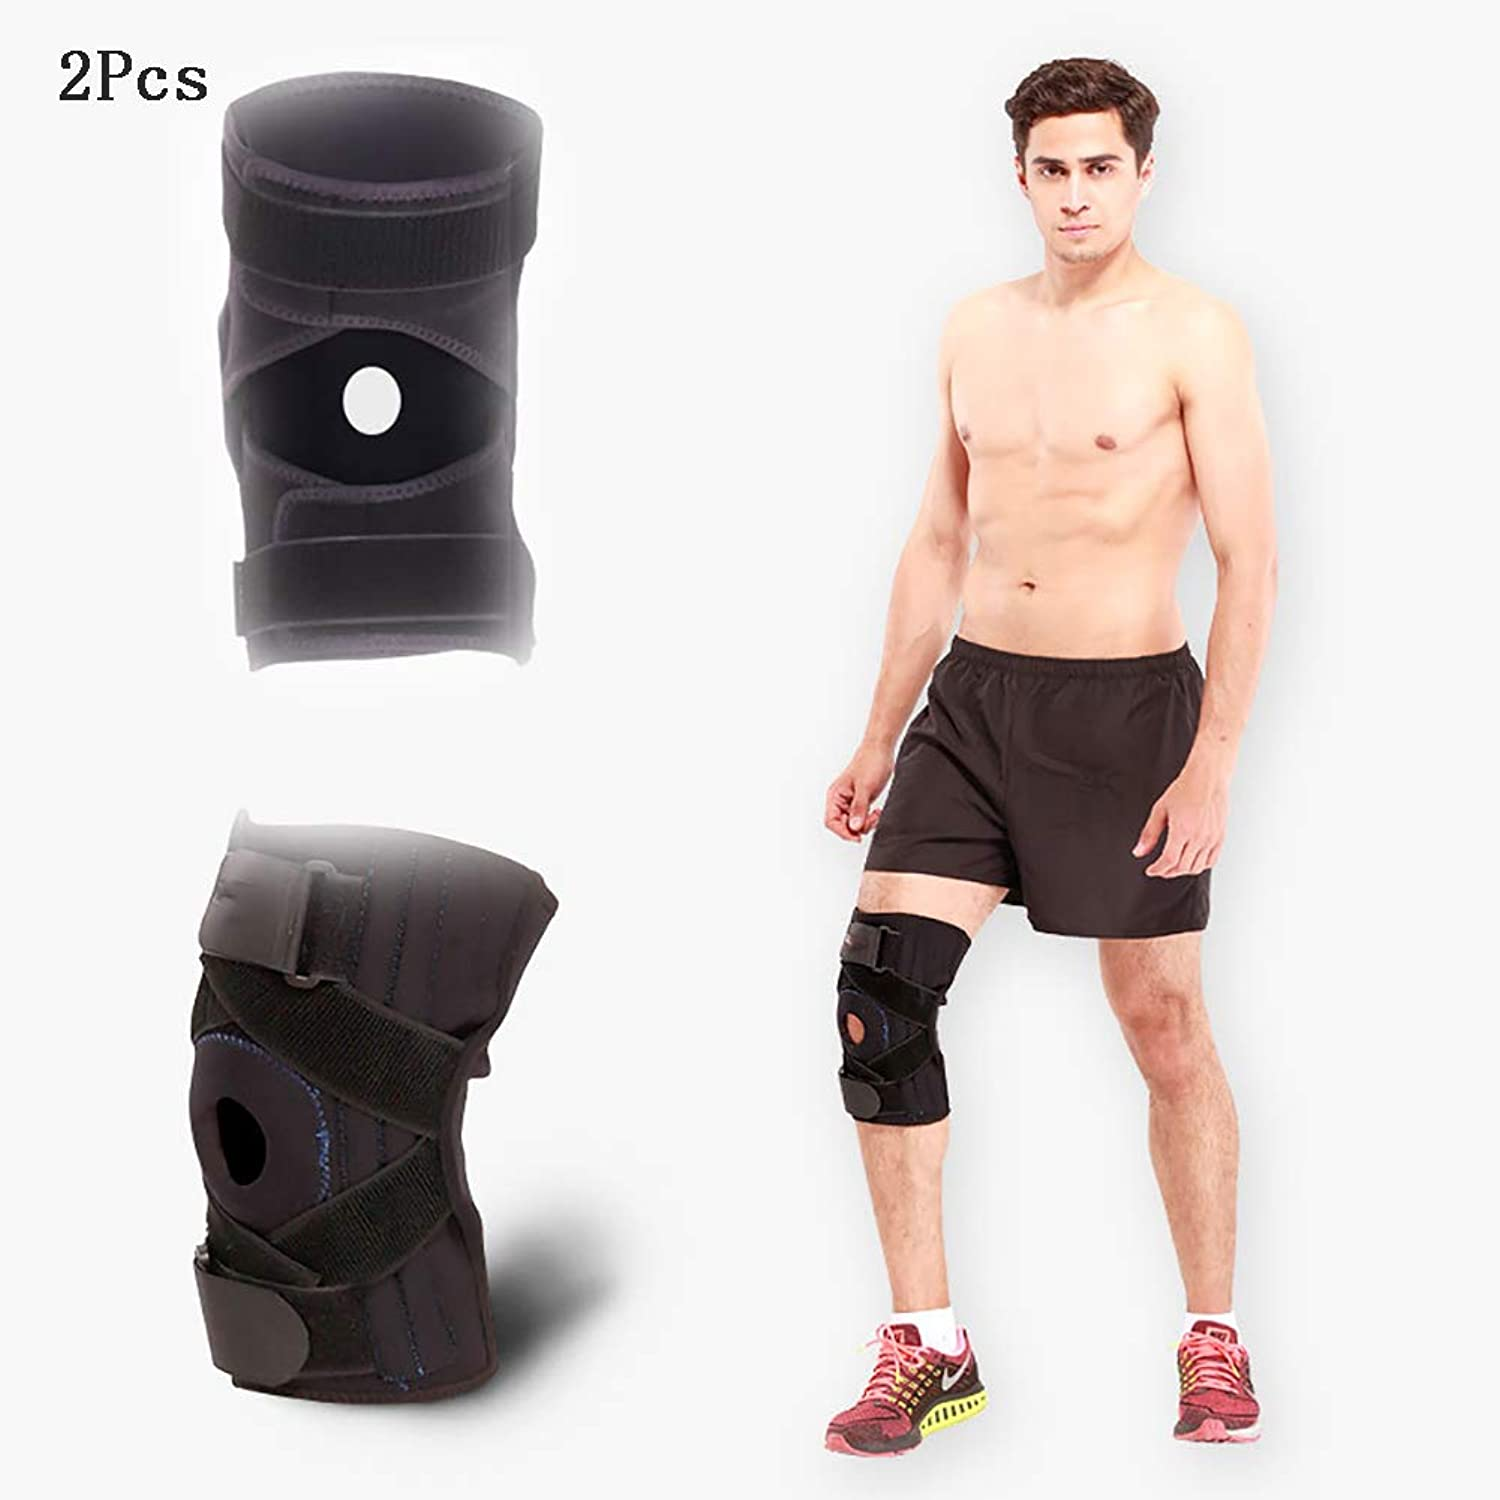 Motion Knee Brace, Adjustable Open Patella Stabilizer for Sports Sprains, Arthritis, ACL, Ligament Injuries 2Pcs,M